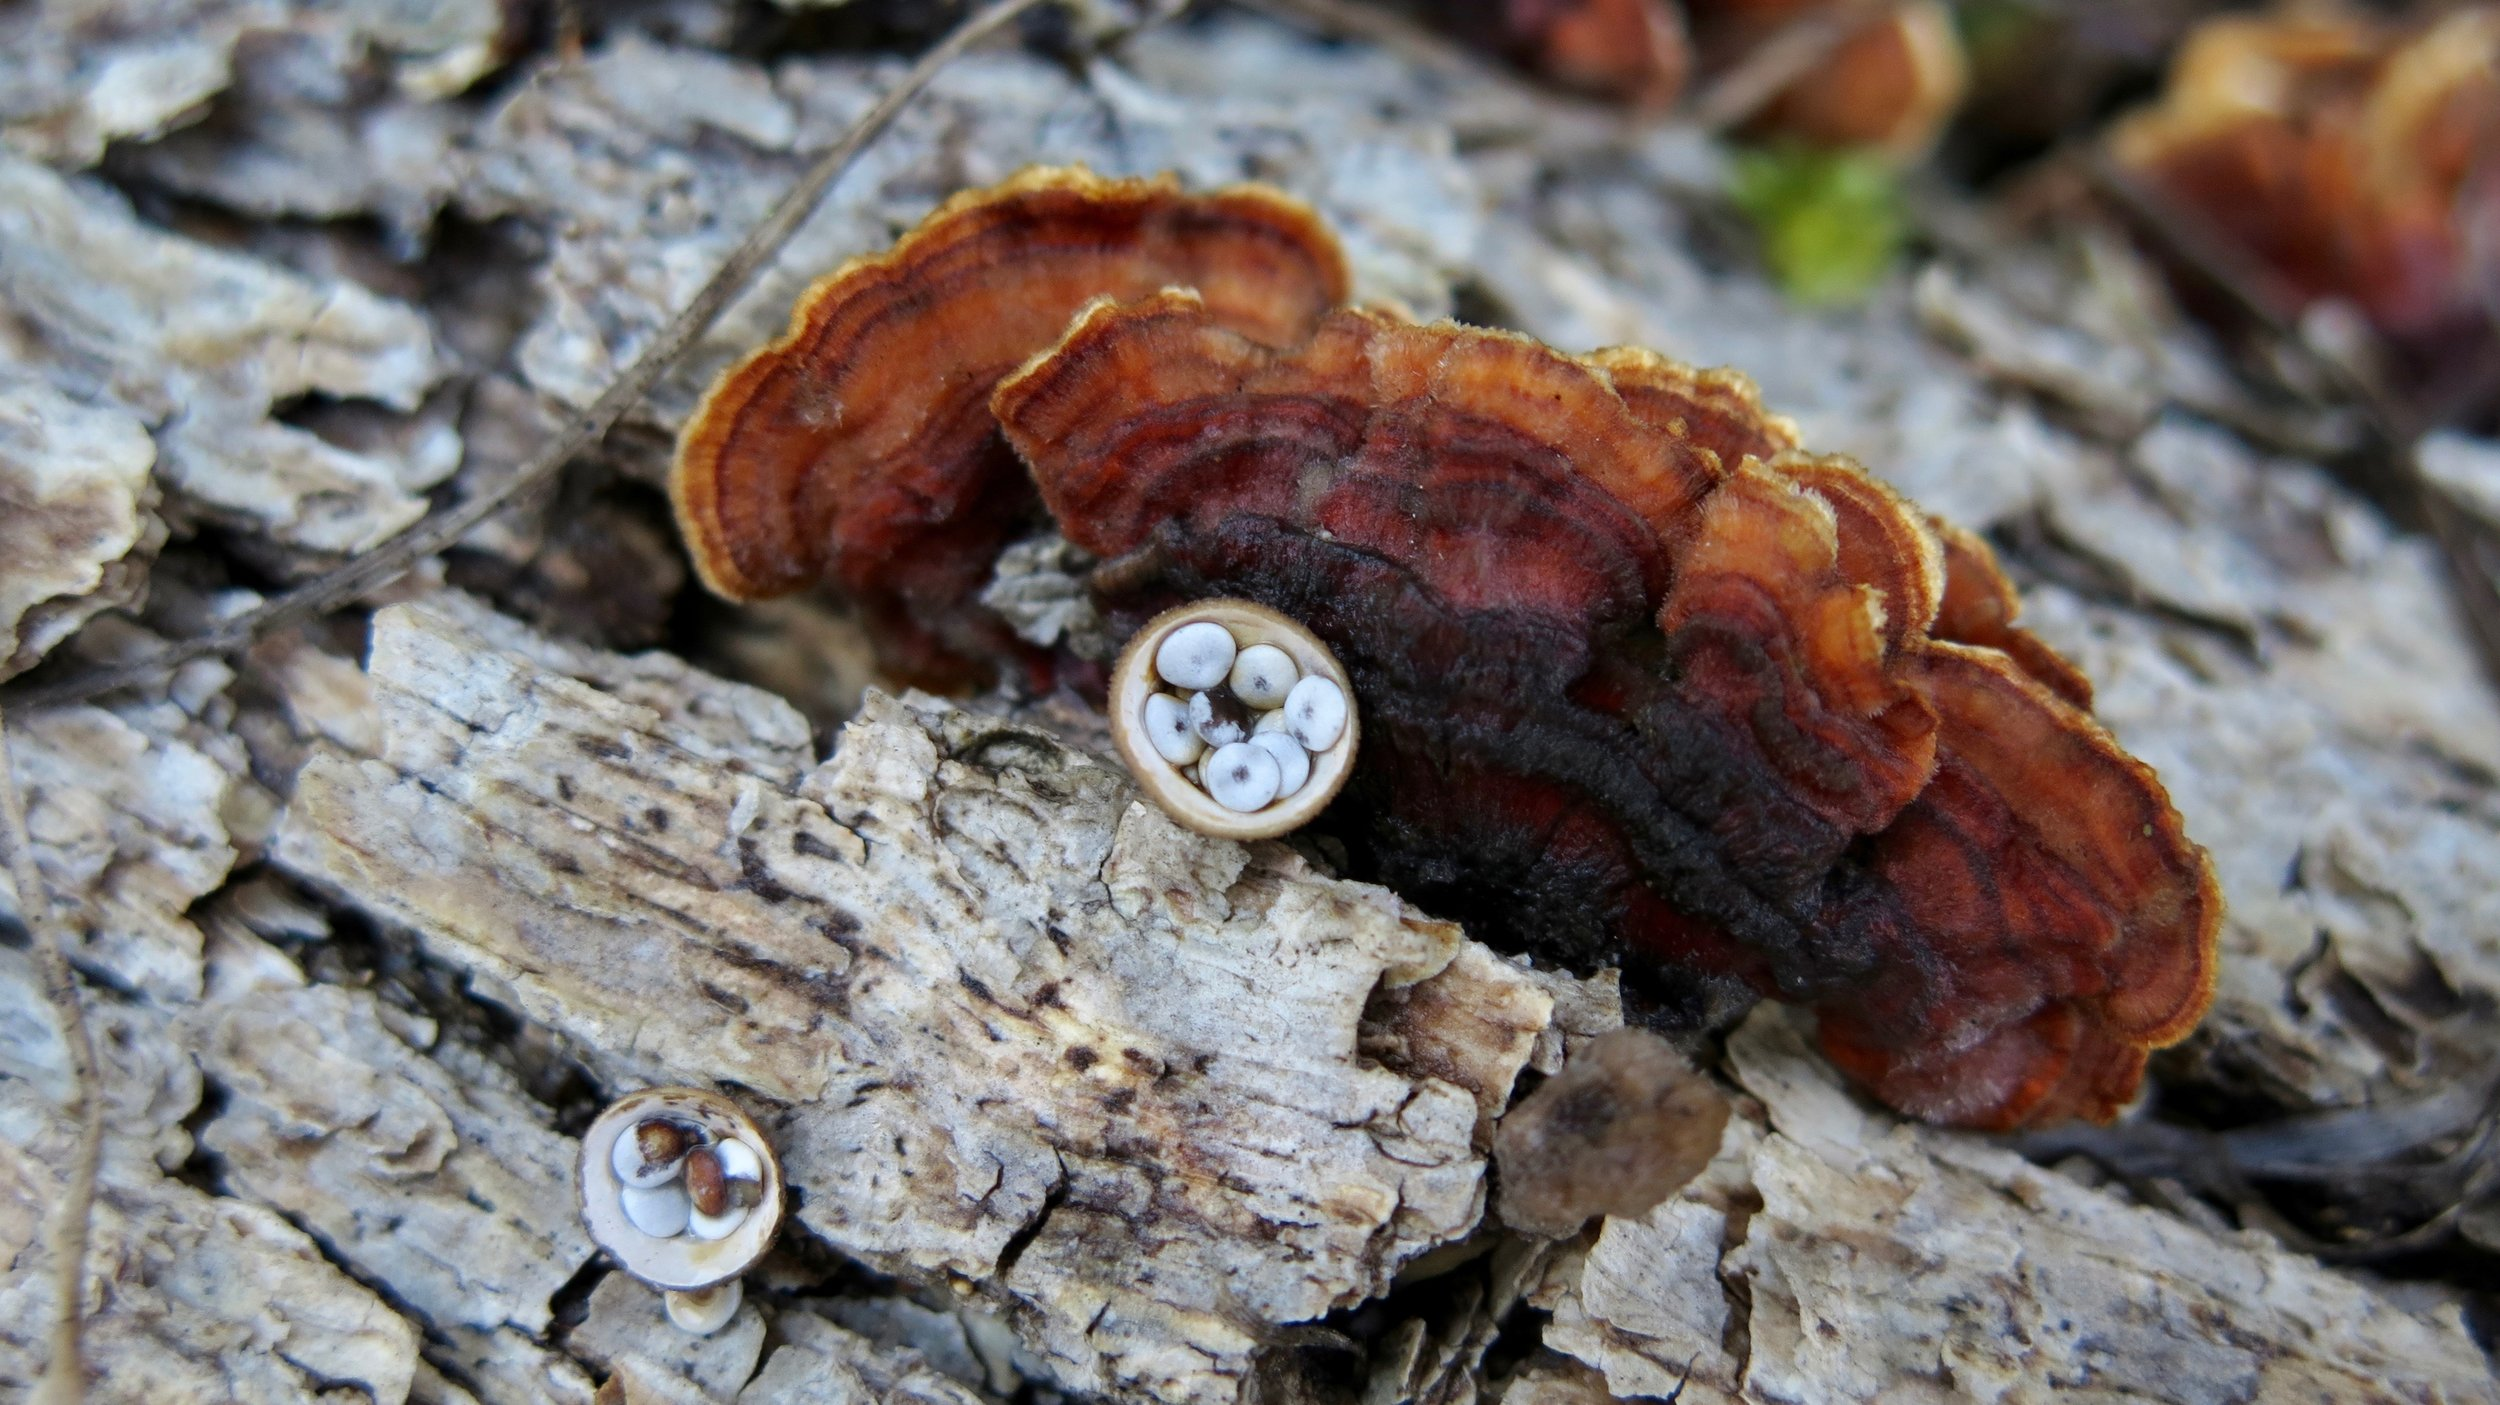 Bird's nest fungi and turkey tail in the oak savanna.